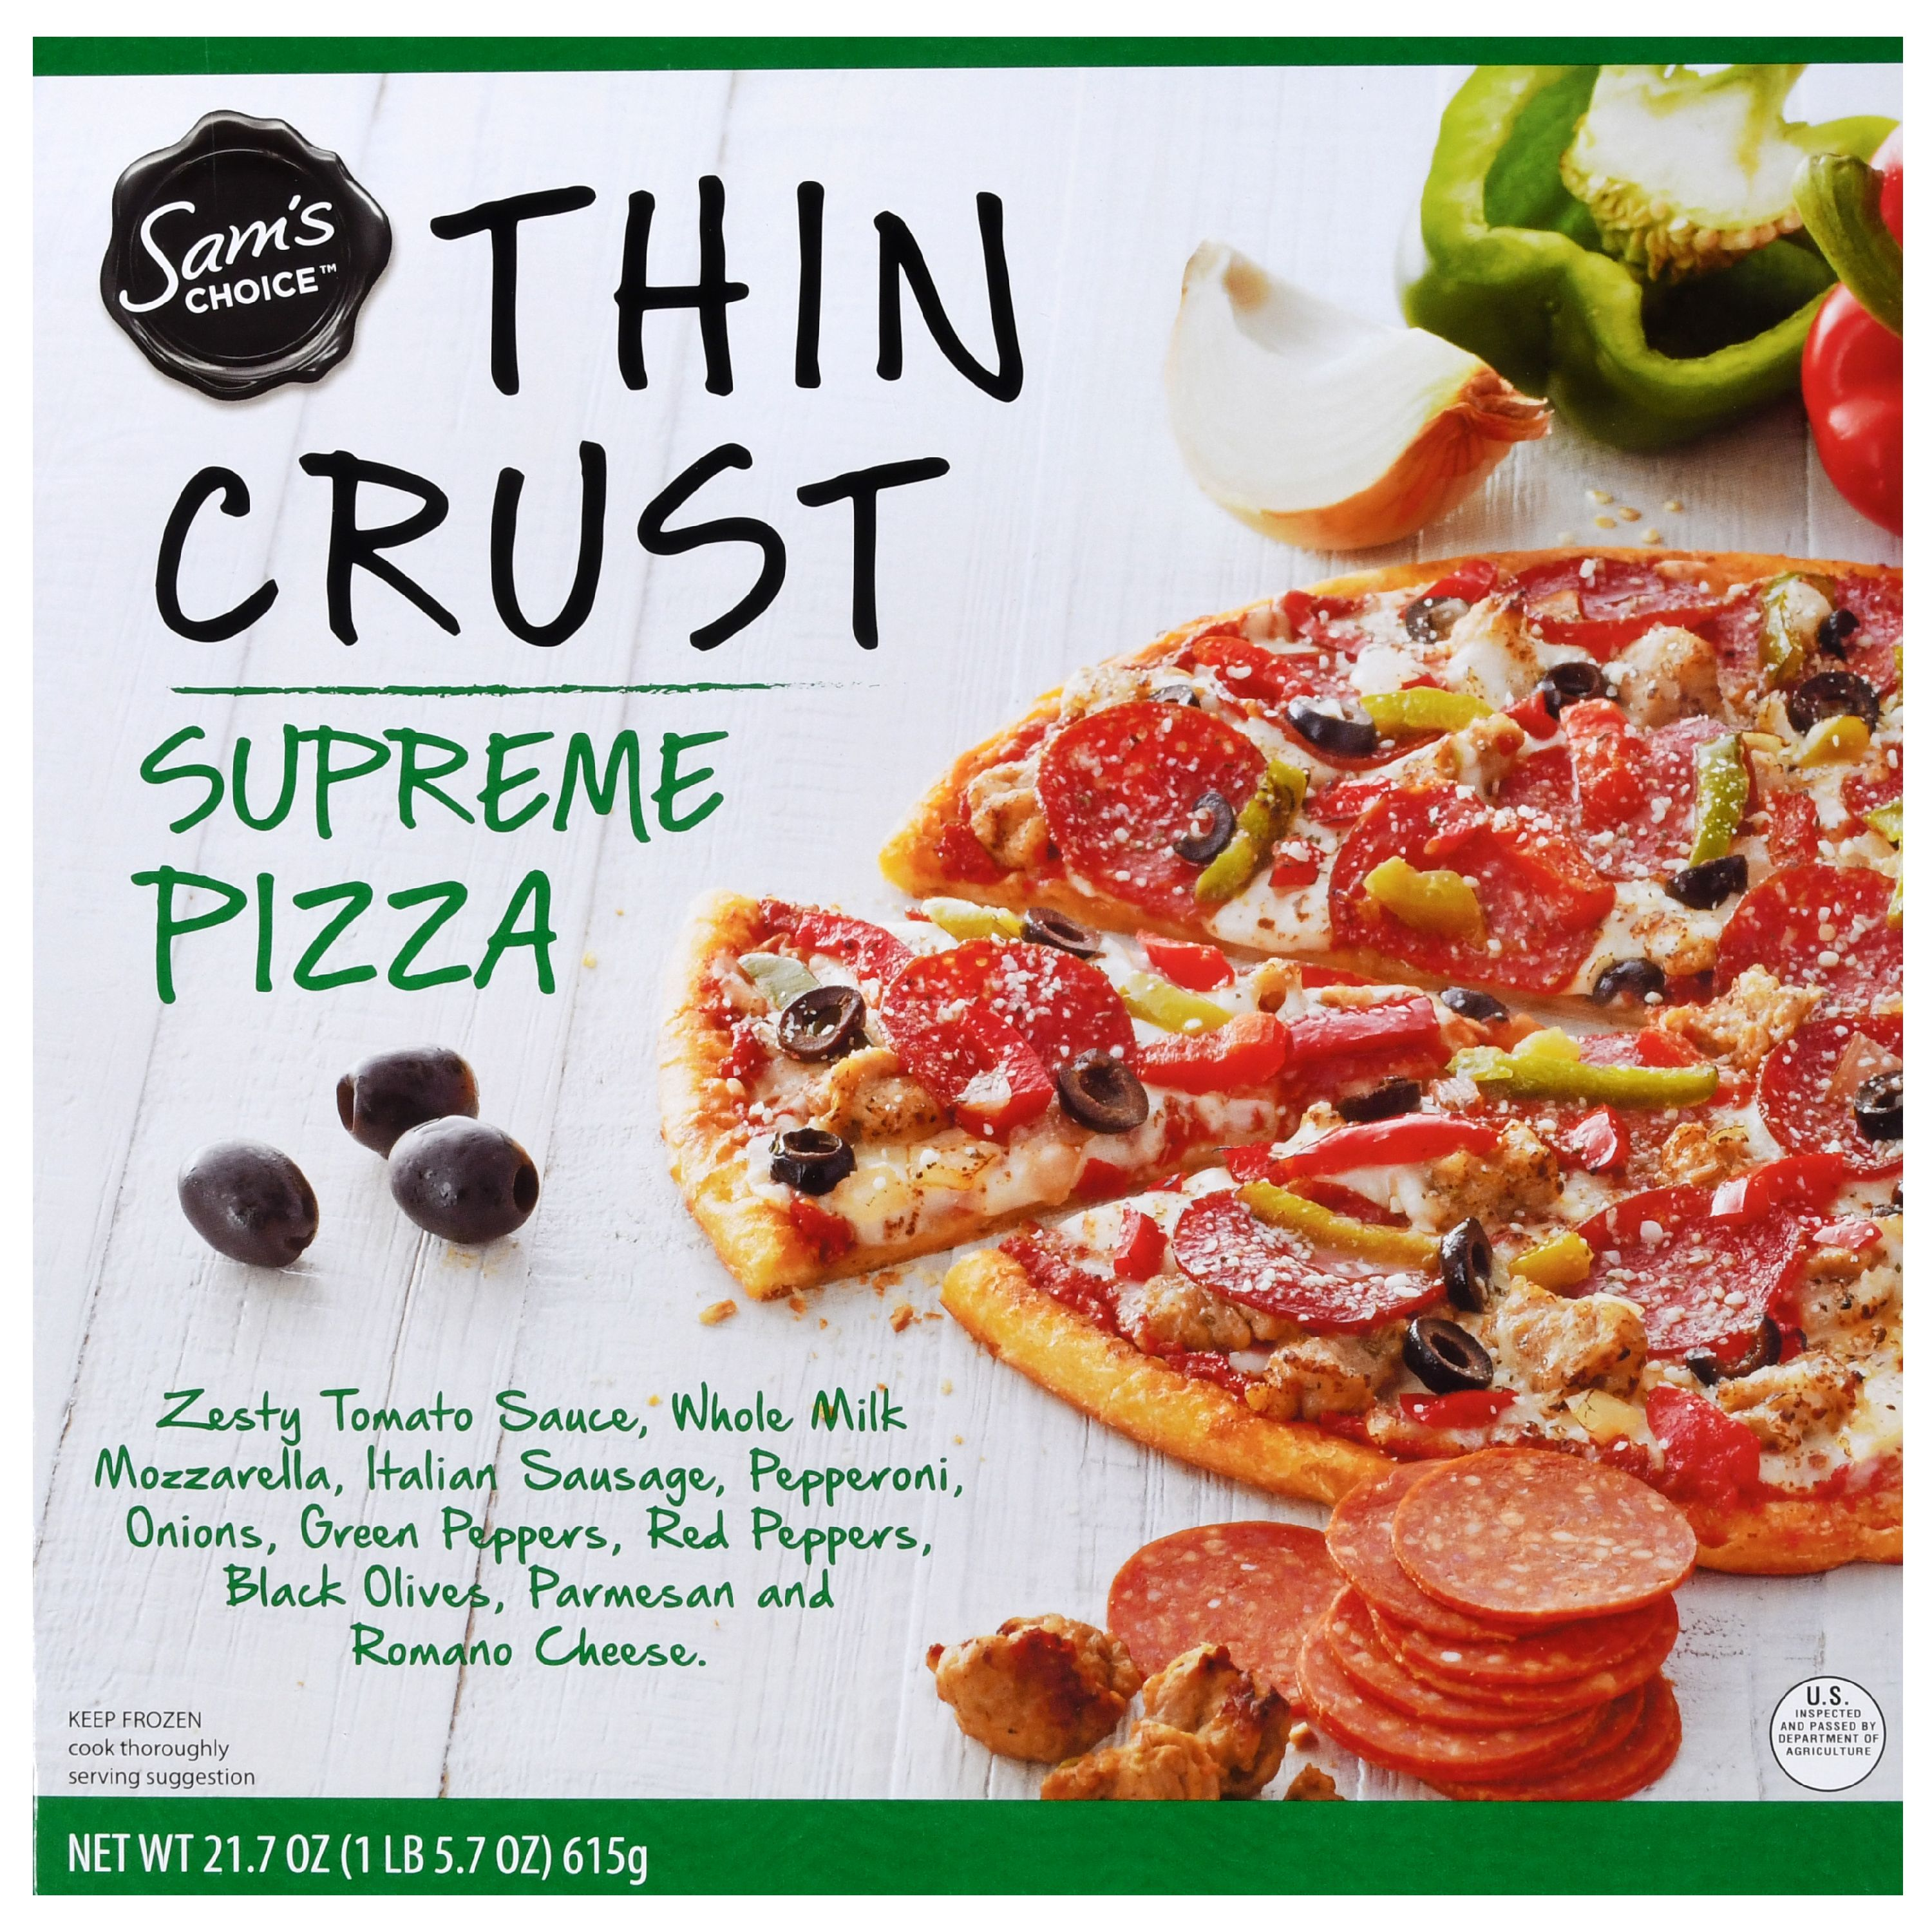 Sam's Choice Frozen Thin Crust Supreme Pizza